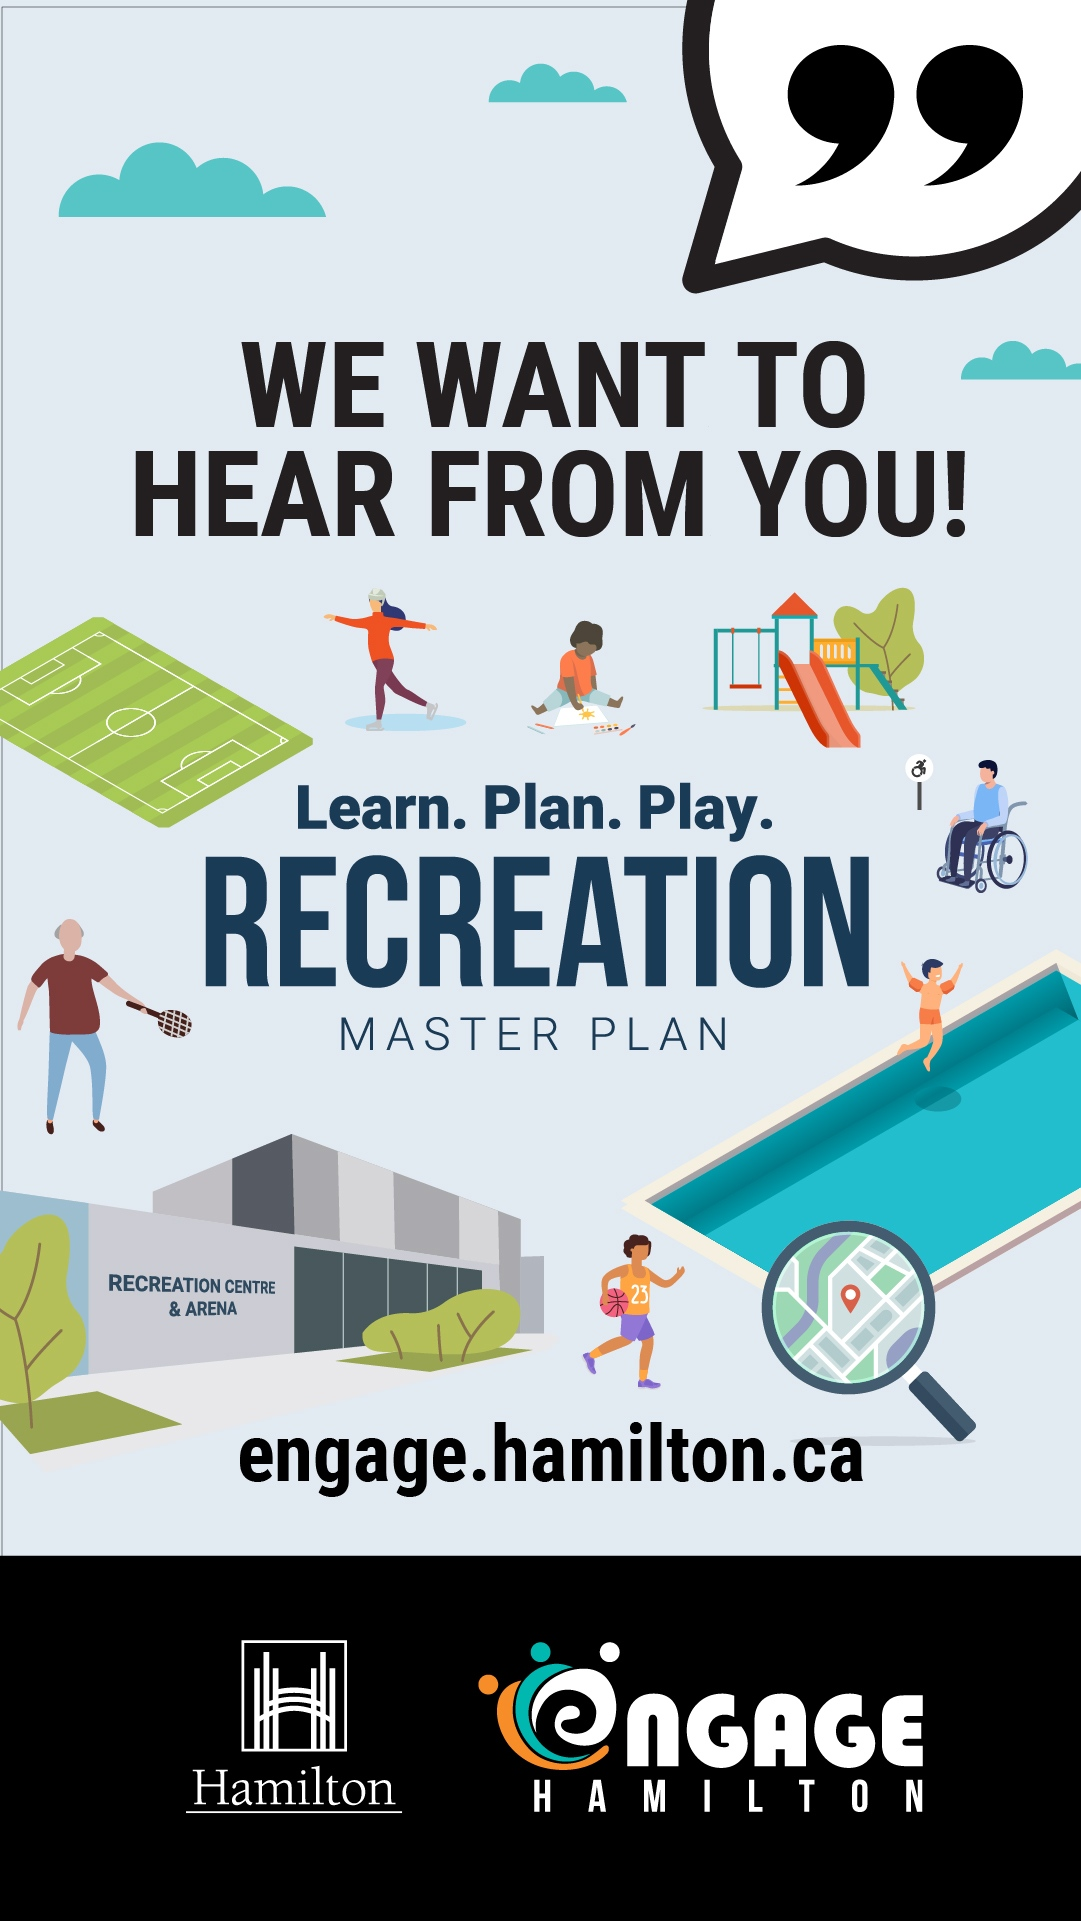 Have your say in the Recreation Master Plan